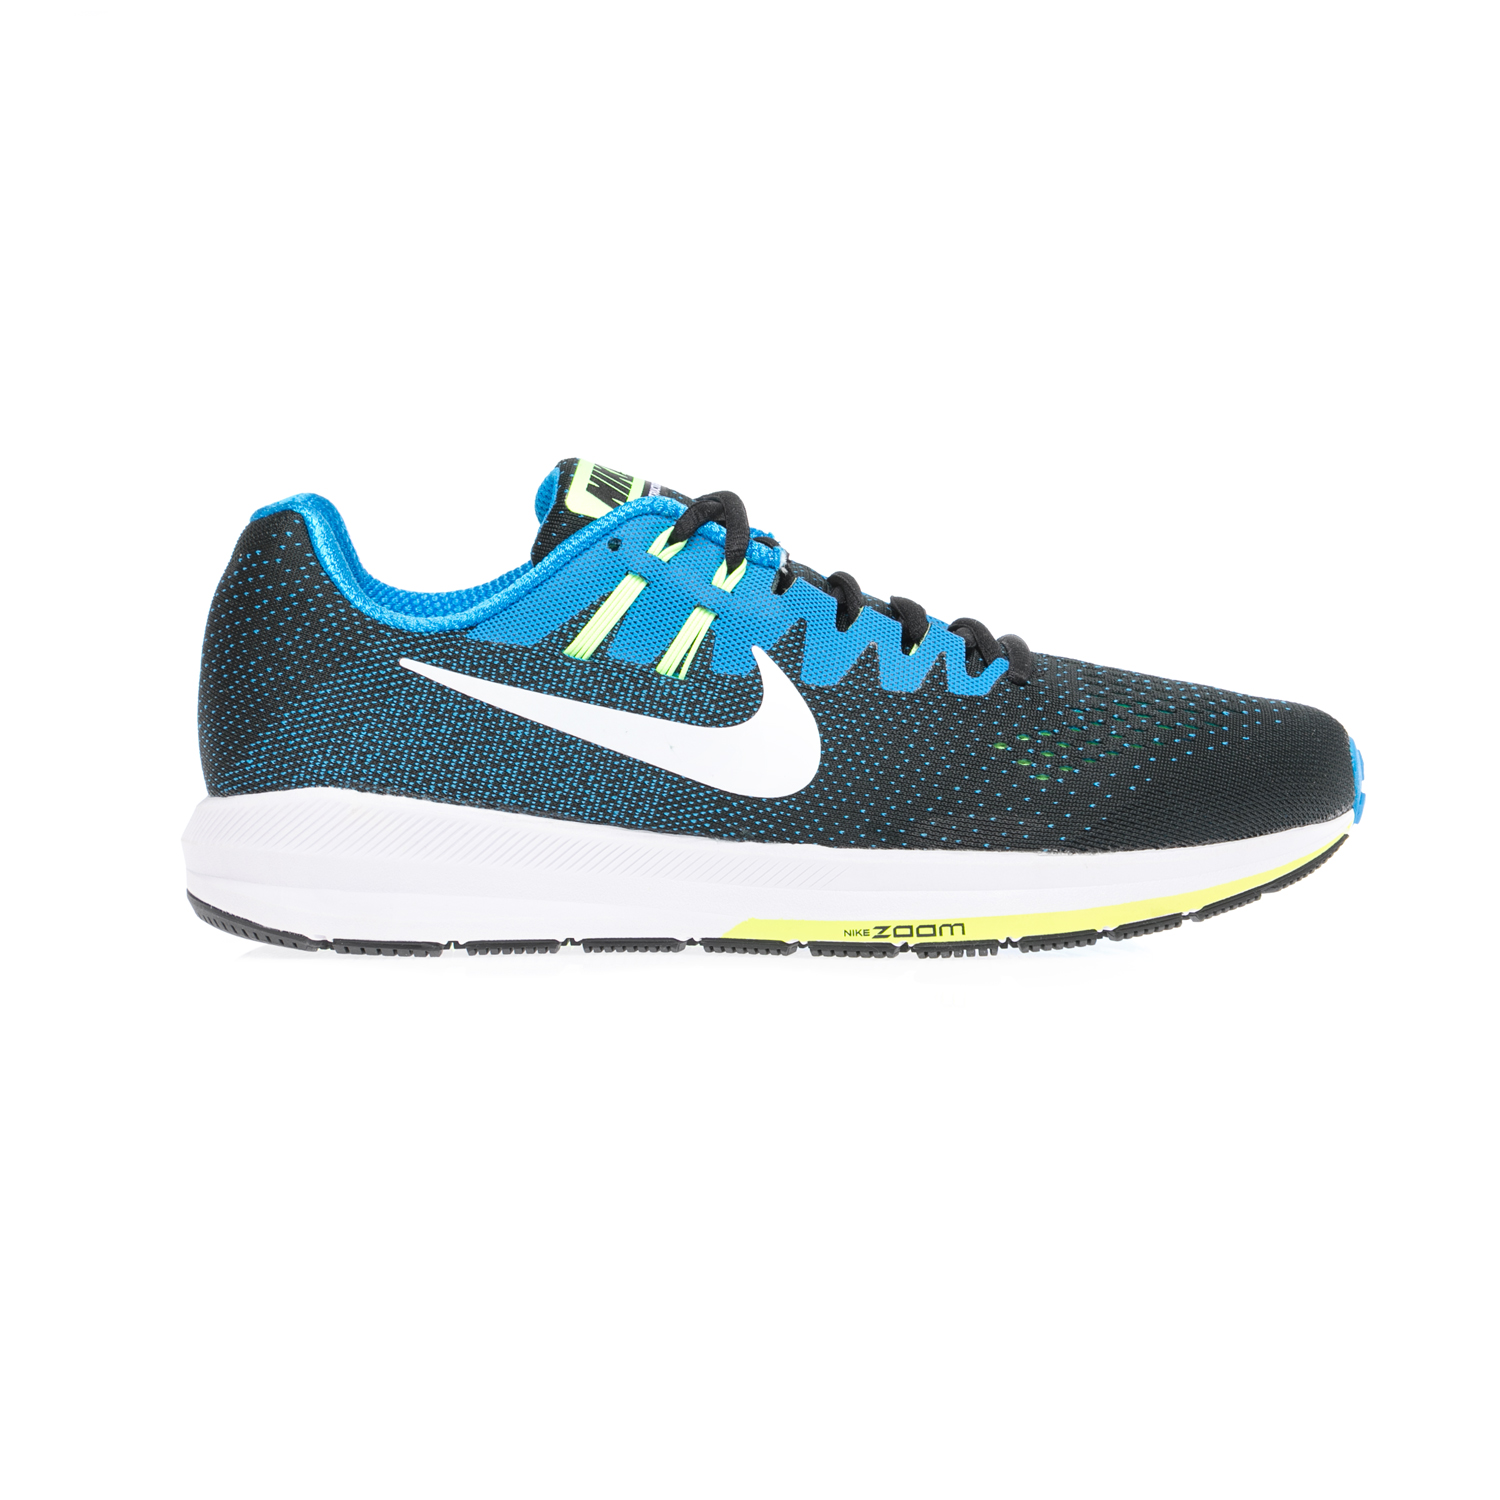 NIKE – Αντρικά παπούτσια NIKE AIR ZOOM STRUCTURE 20 μπλε